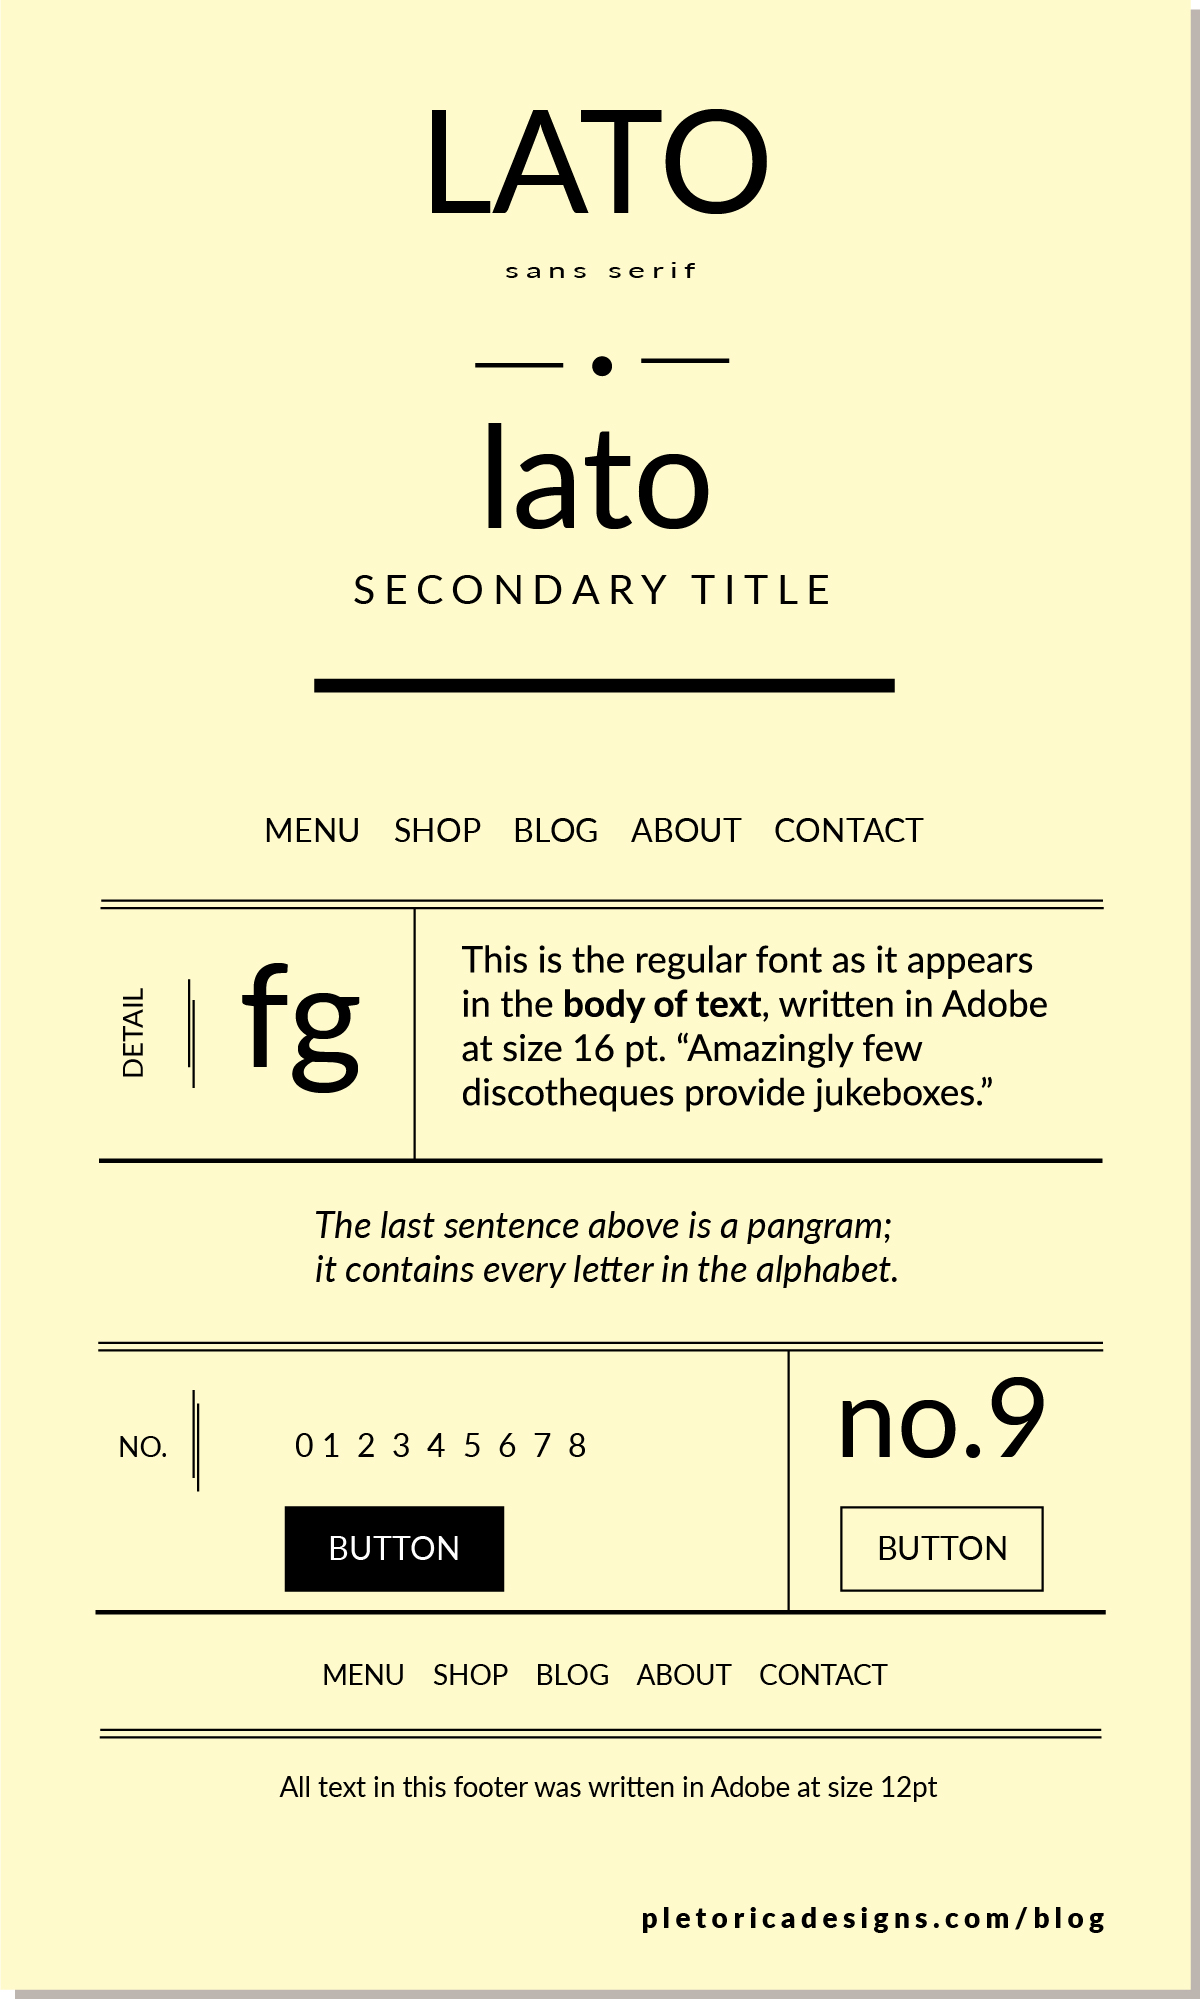 LET'S TYPE: Lato — PLETÓRICA DESIGNS